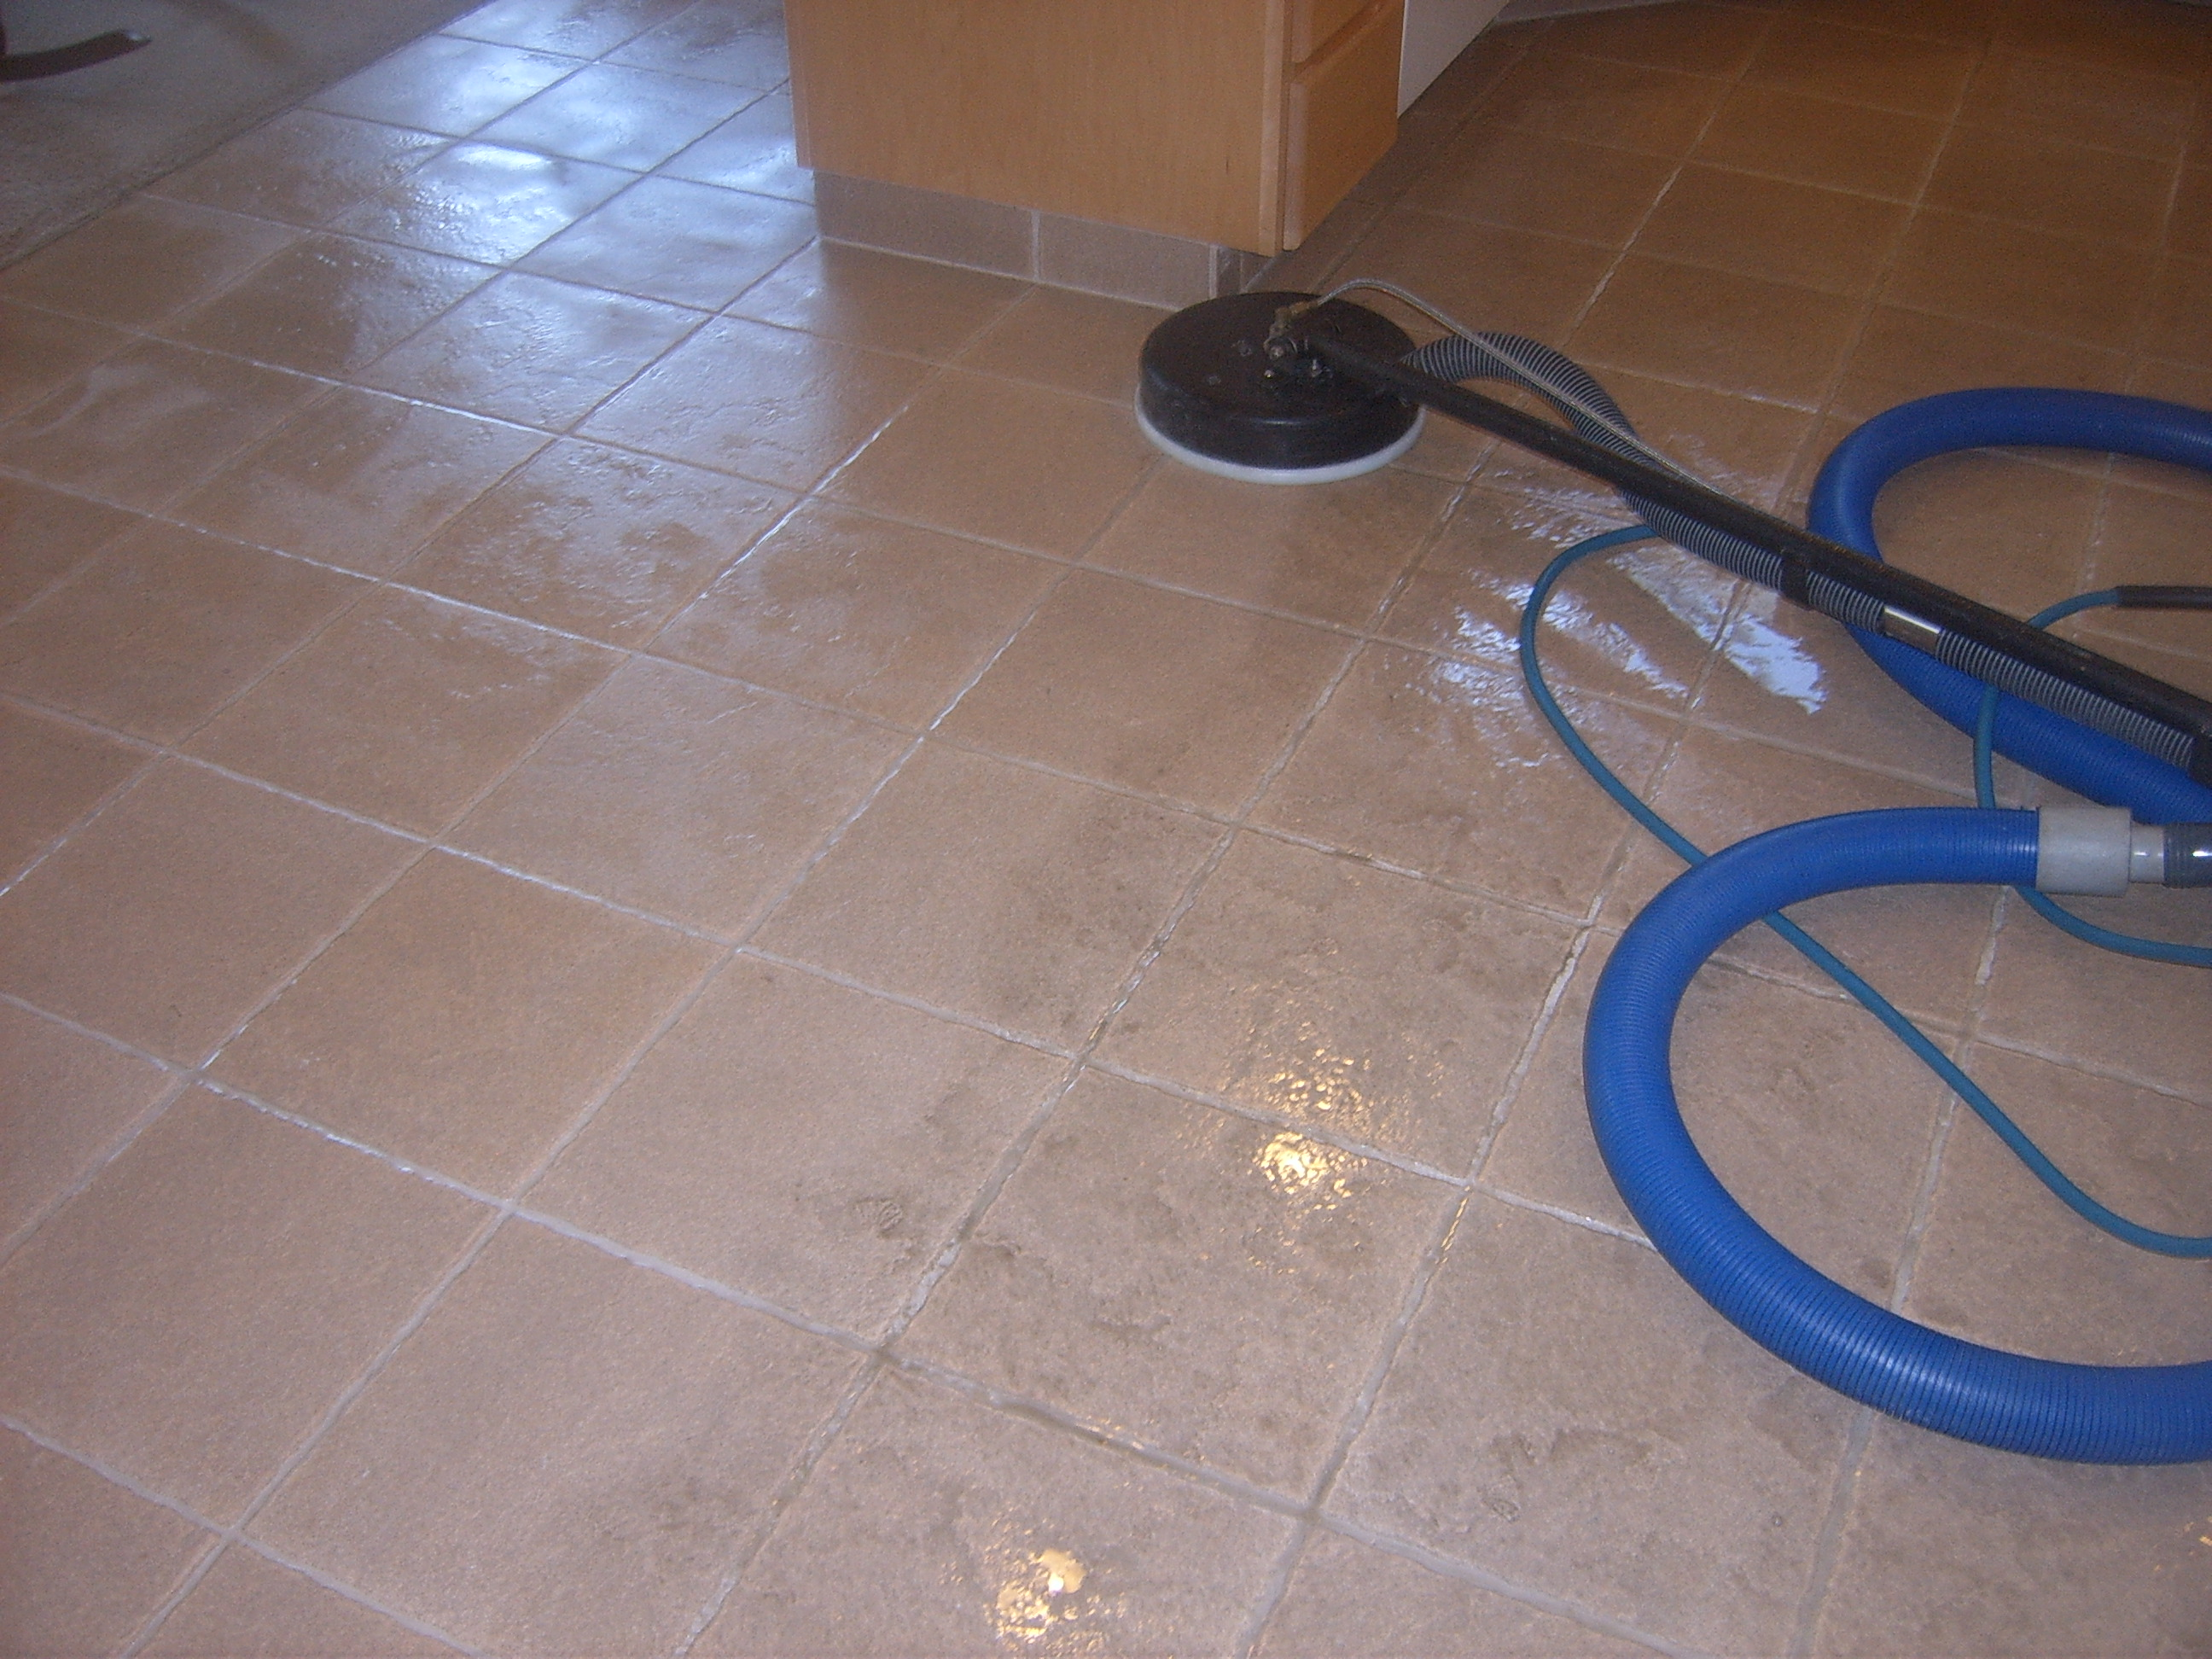 Rainbow carpet cleaning ceramic tile grout cleaning can you see the difference dailygadgetfo Choice Image